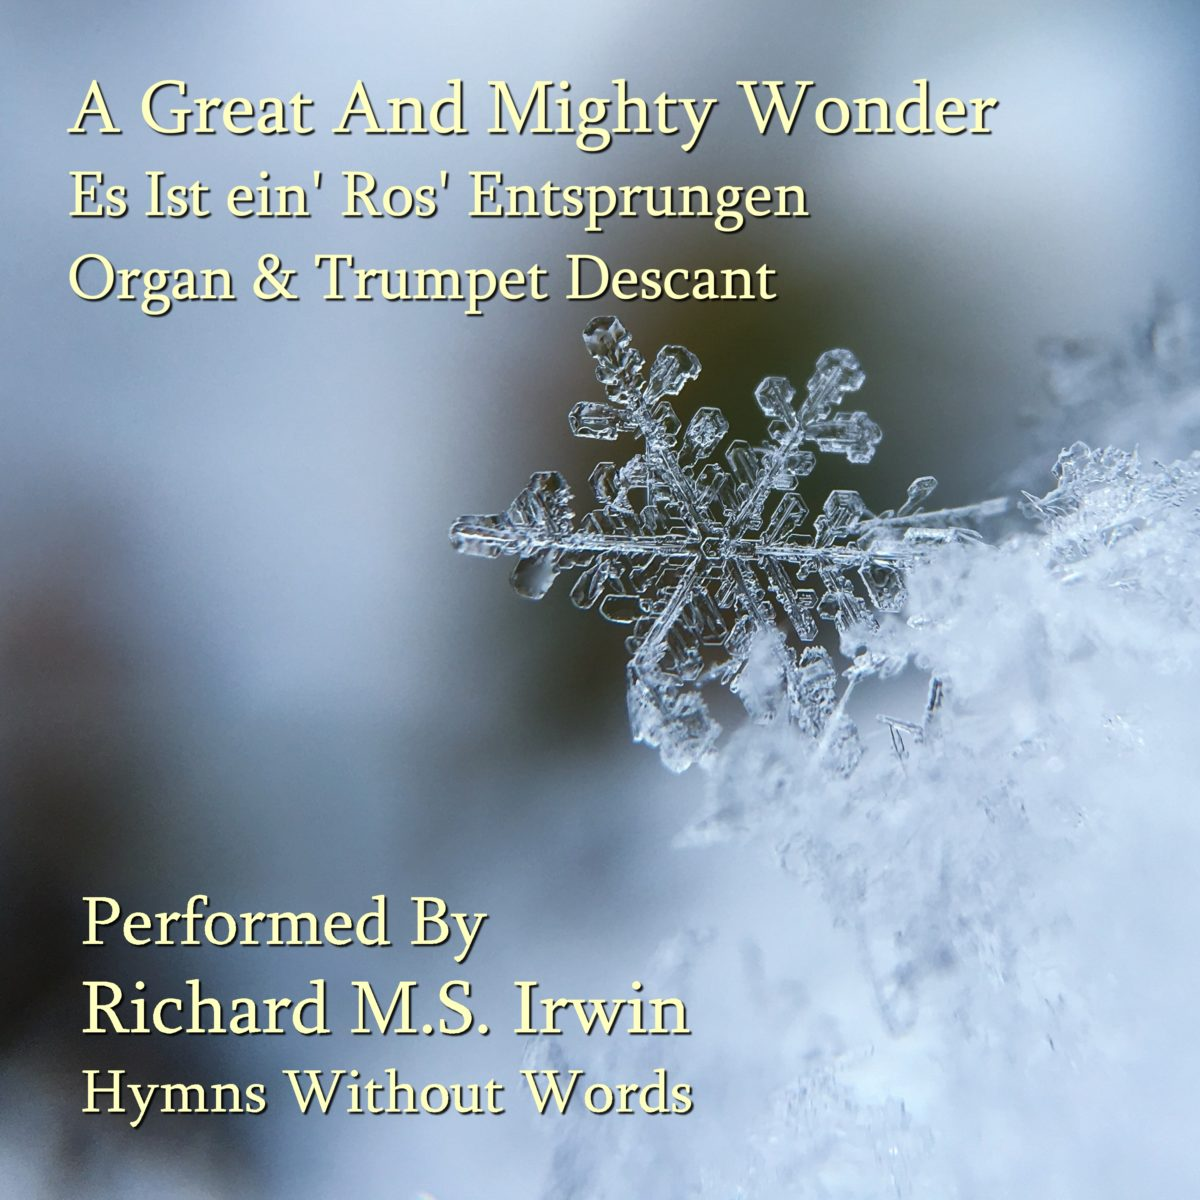 A Great And Mighty Wonder (Es Ist Ein Ros Entsprungen – 4 Verses) – Organ & Trumpet Descant